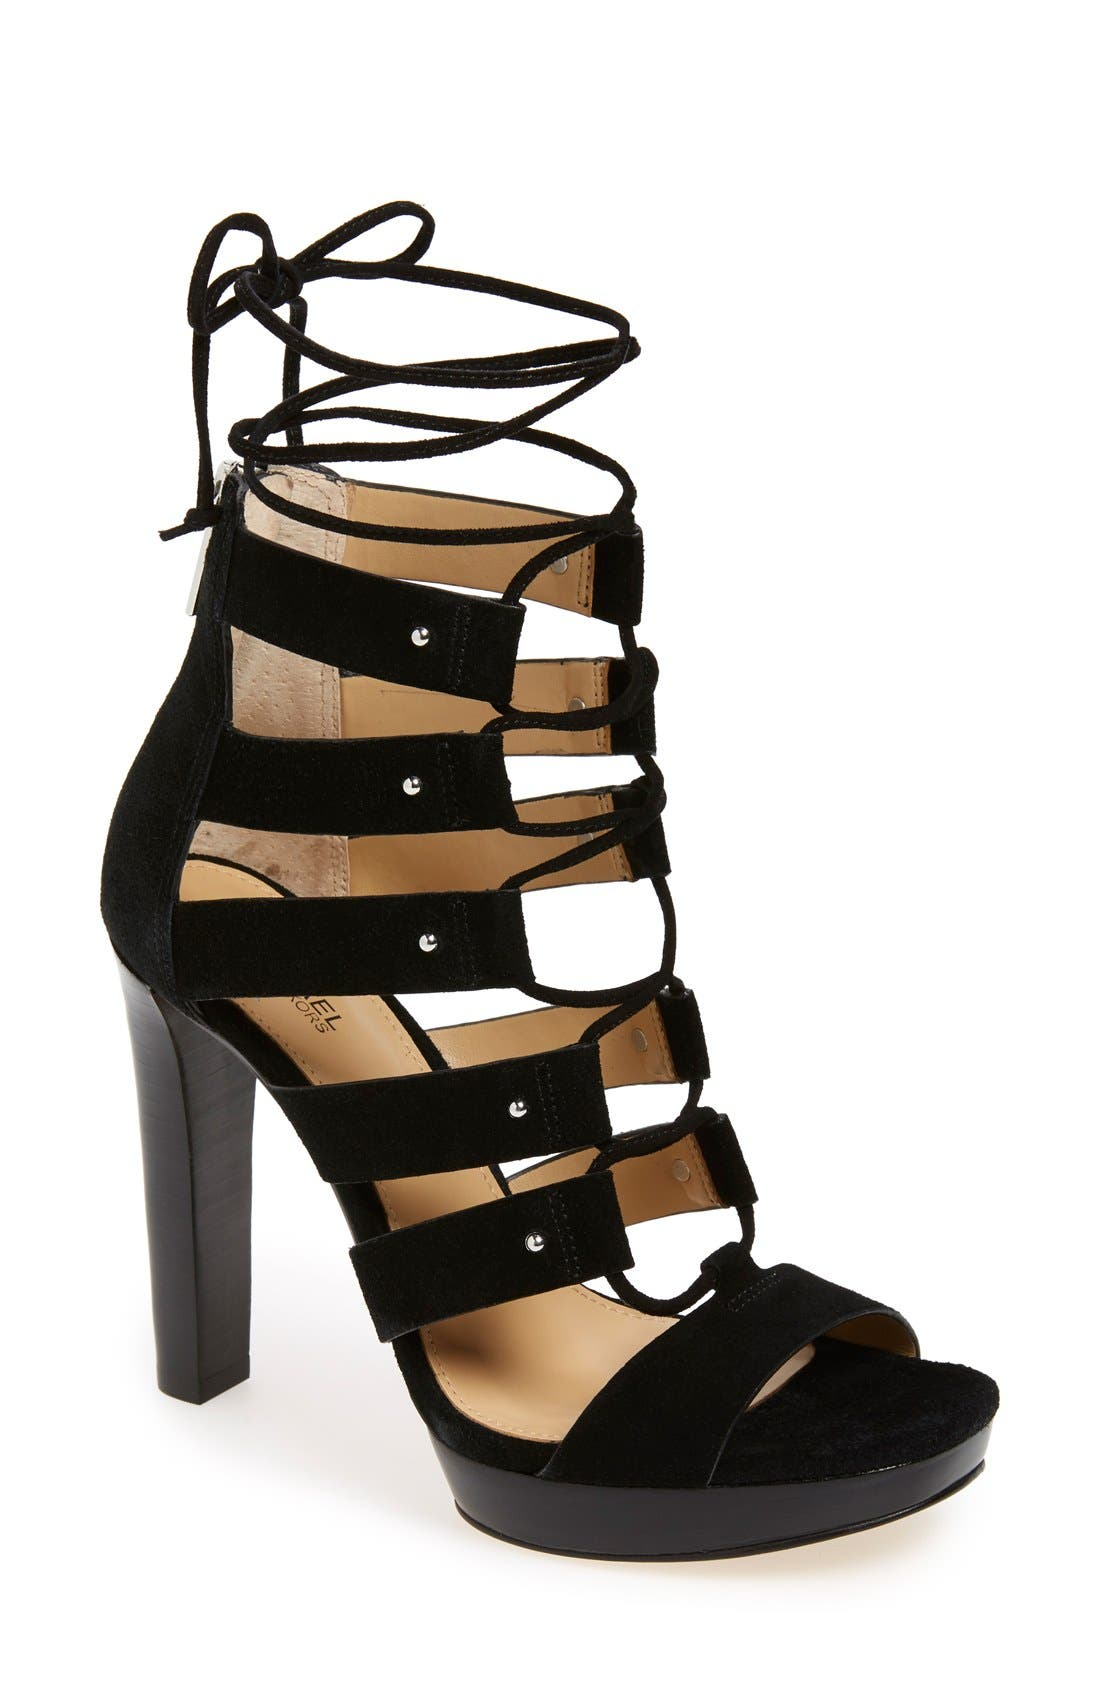 Alternate Image 1 Selected - MICHAEL Michael Kors 'Sofia' Platform Gladiator Sandal (Women)